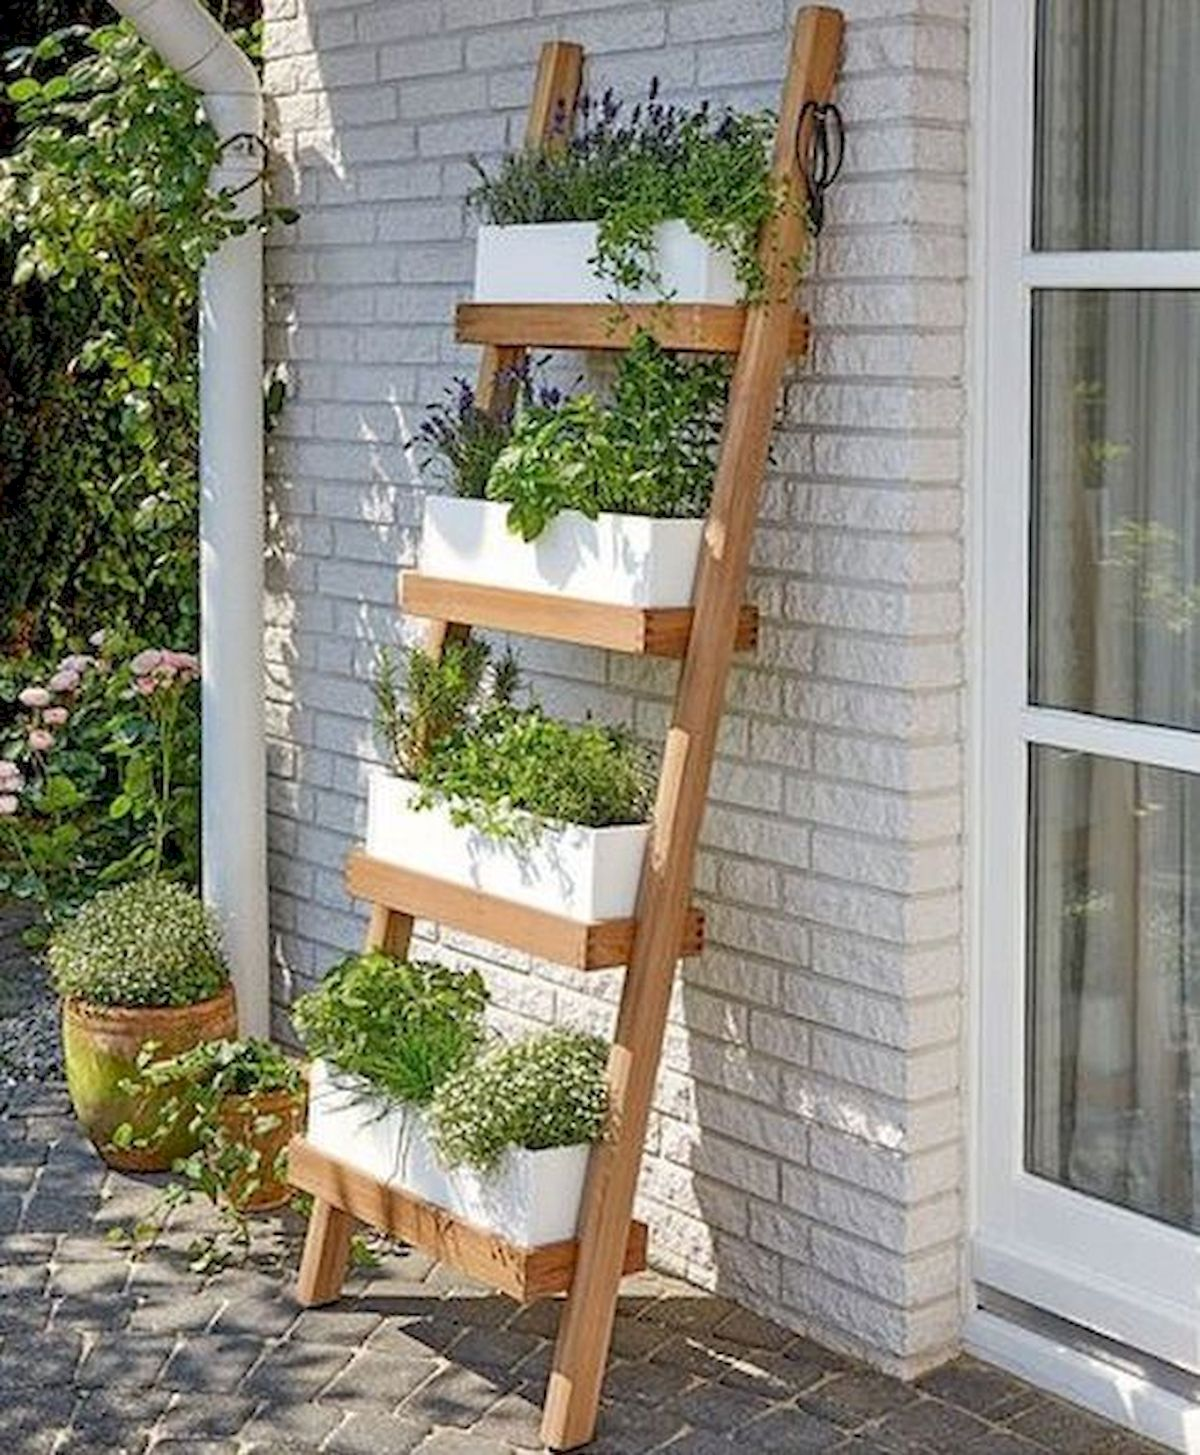 Ladder In The Garden Design Ideas and Remodel (20)